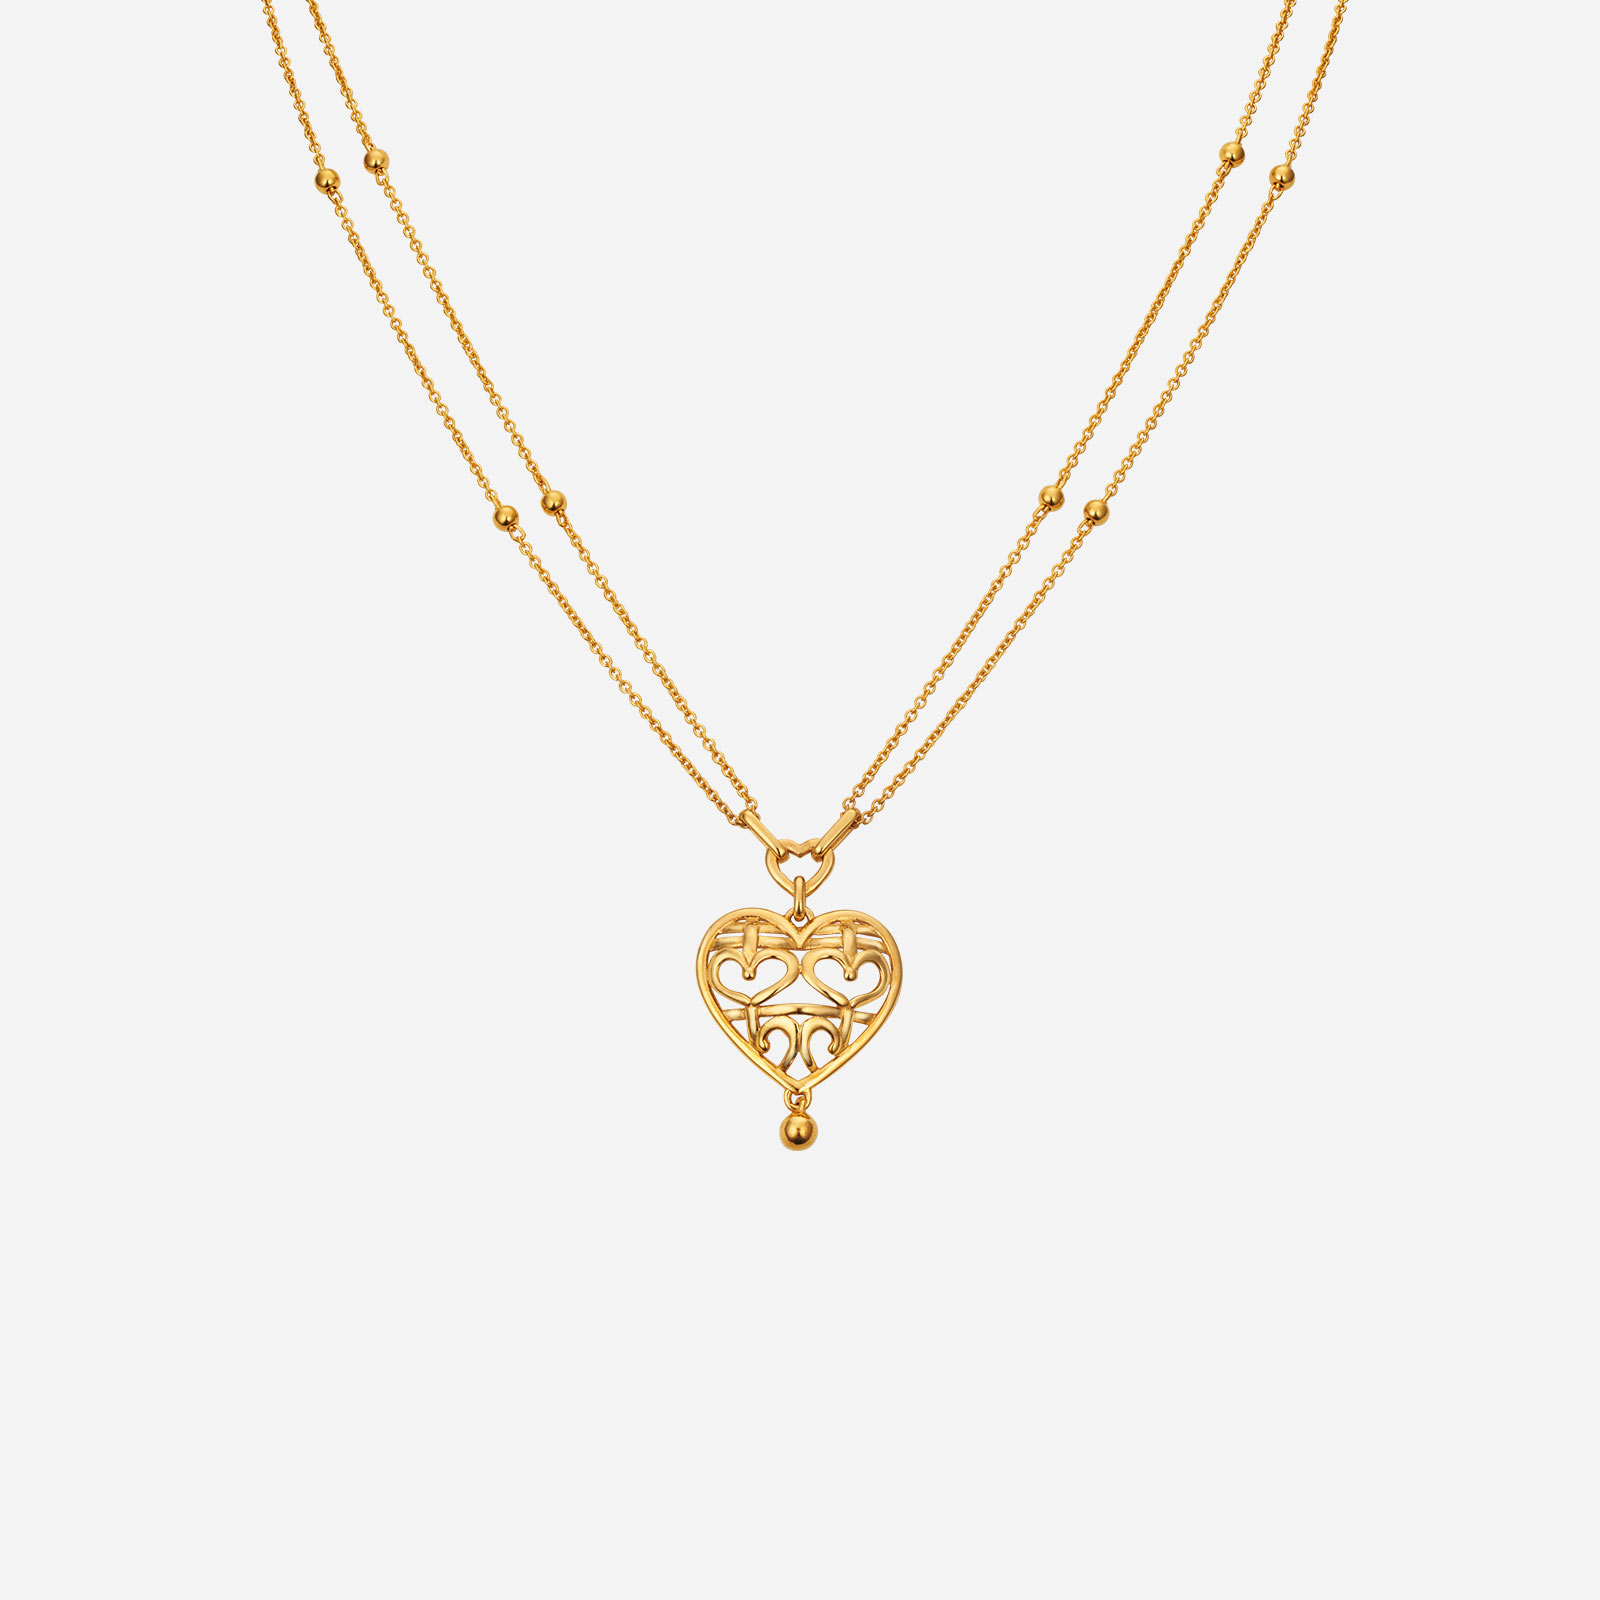 Double Happiness Heart Necklace